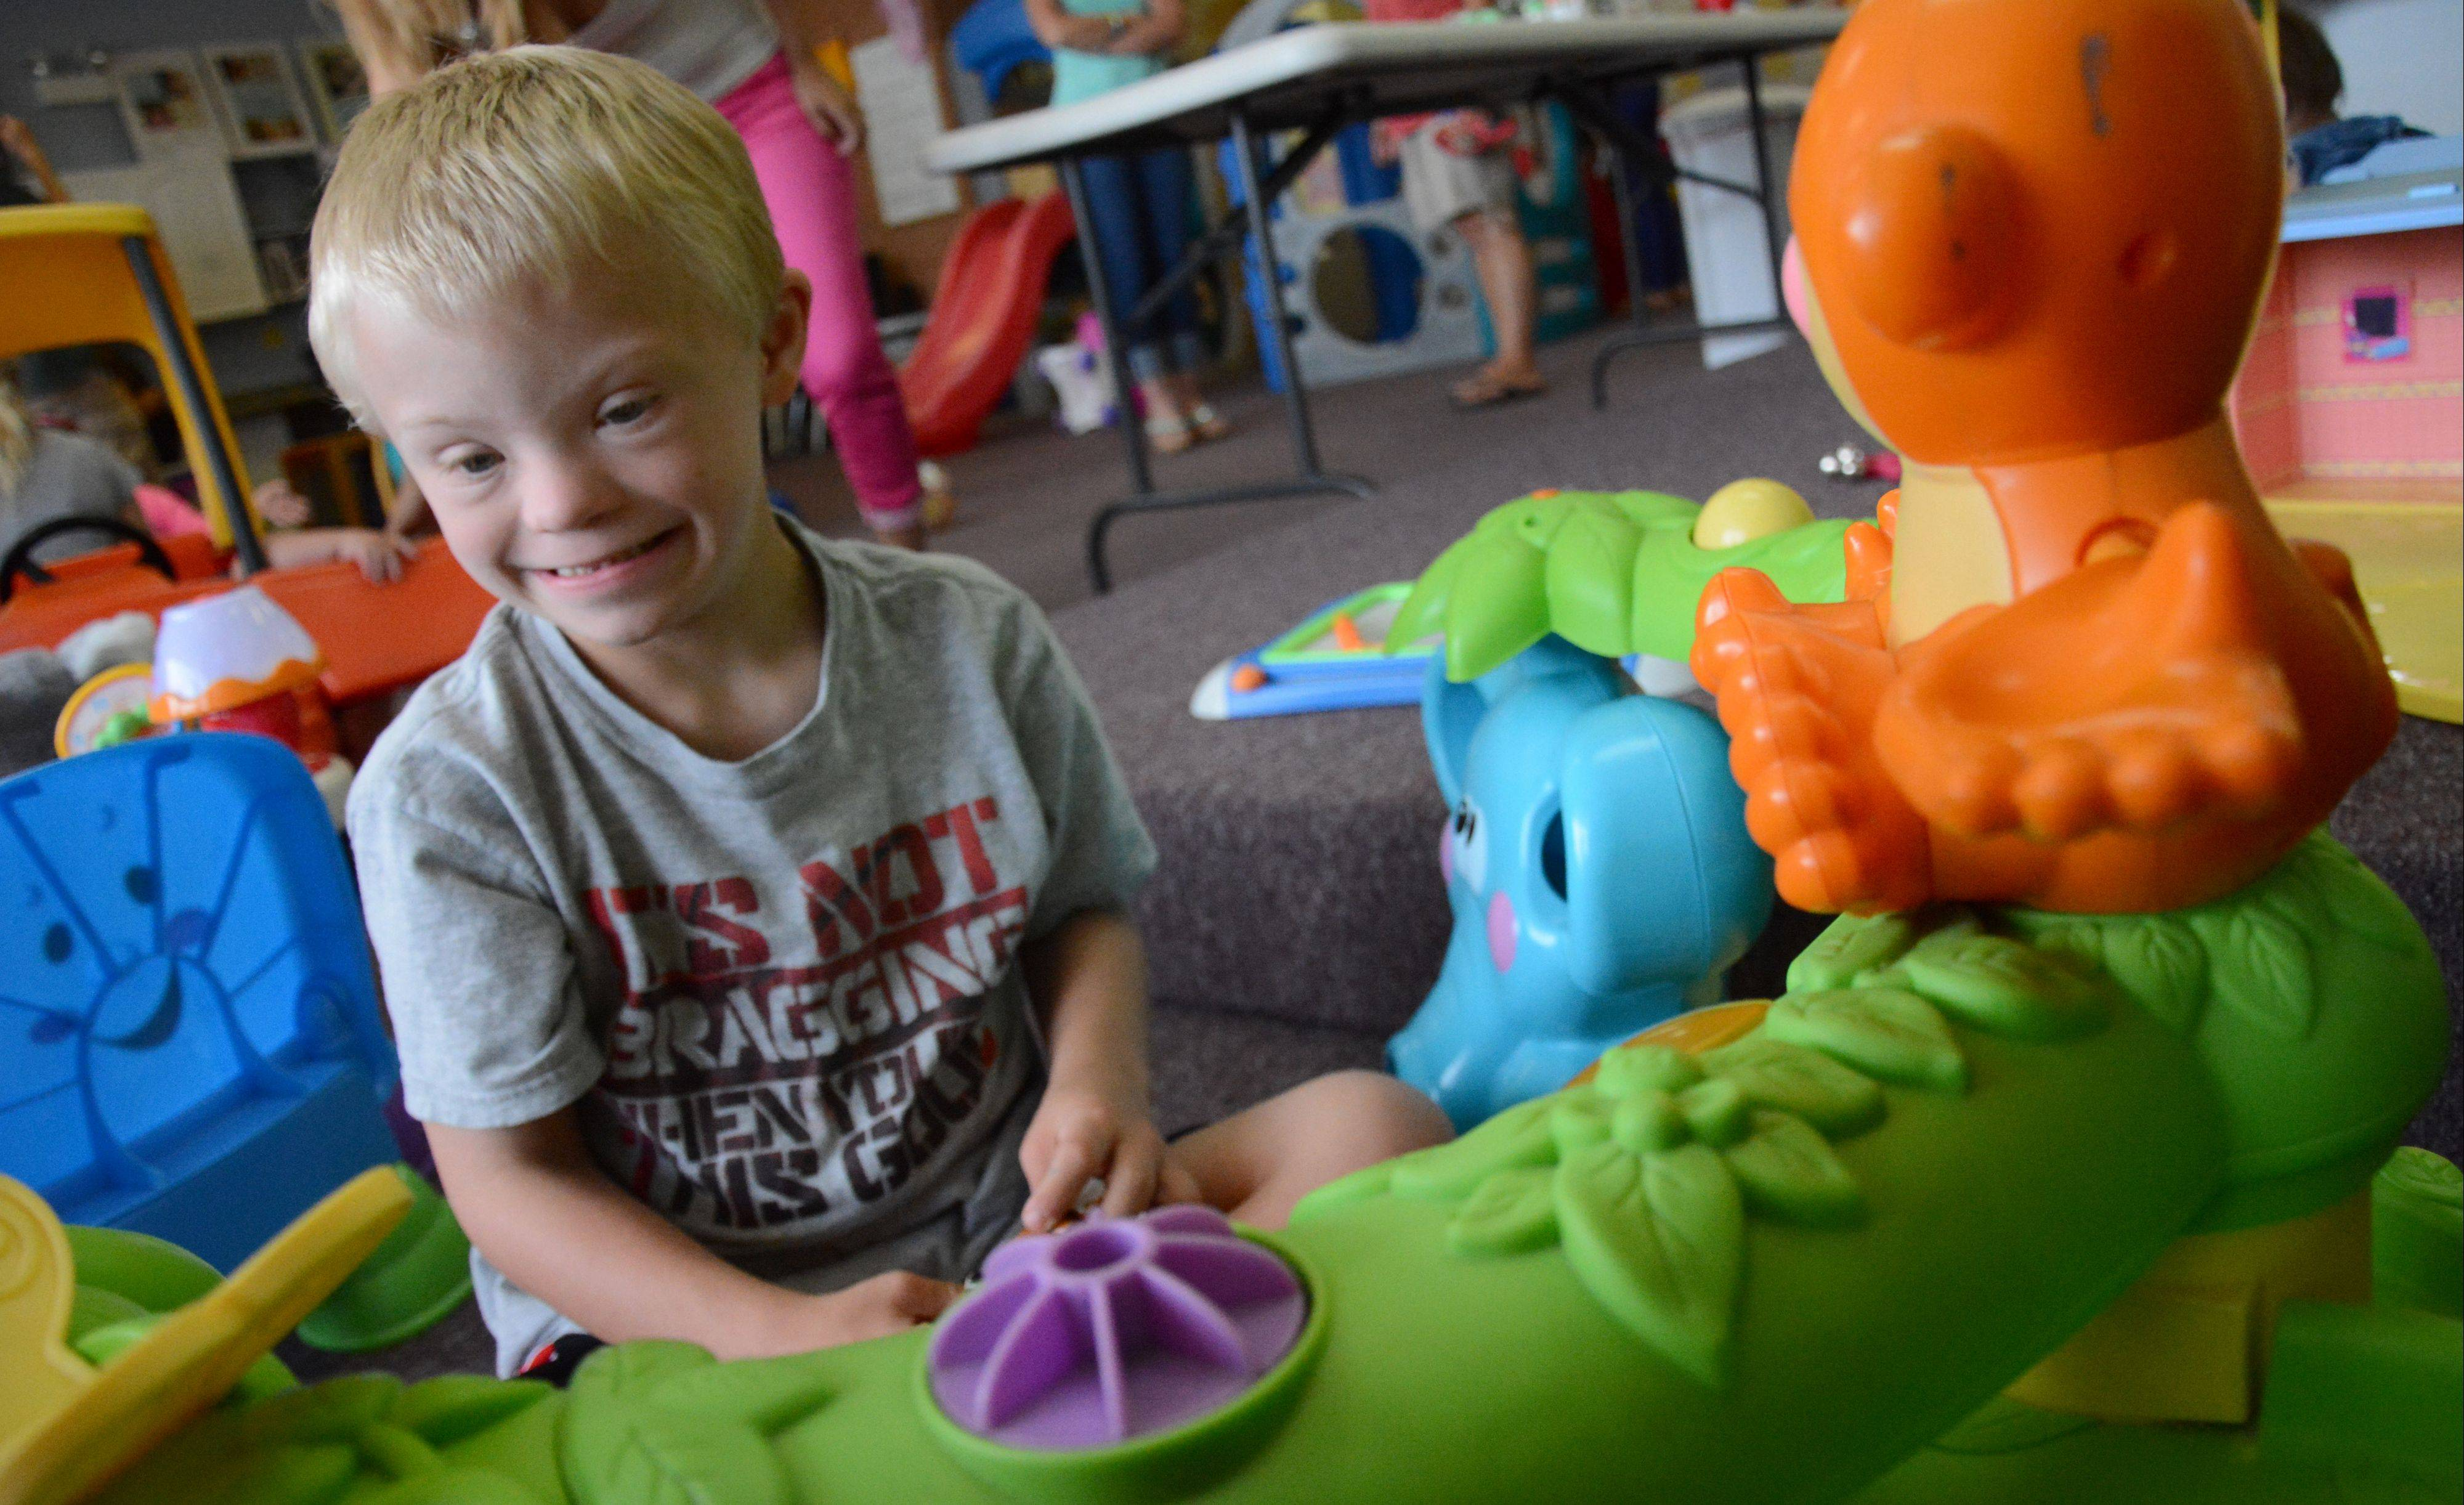 Cody Huston, 6, of Naperville plays with a toy during open playtime at GiGi�s Playhouse in Hoffman Estates.To accommodate growing interest in GiGi�s Playhouses across the nation, a National Achievement Center is being built.